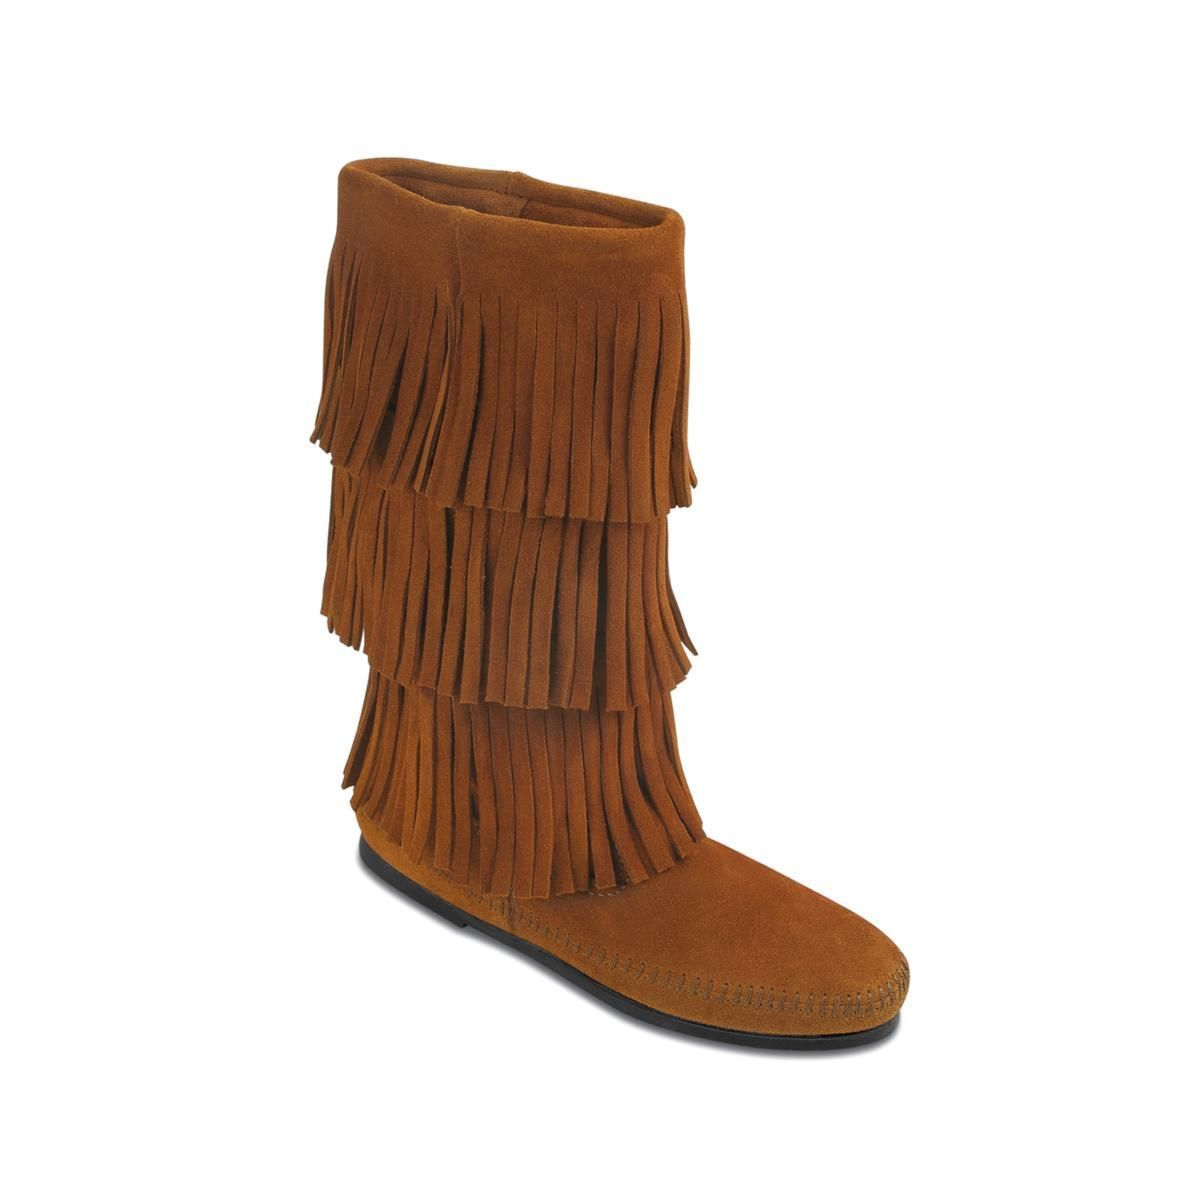 Minnetonka 3-Layer Suede Fringe Boot 438-682 by